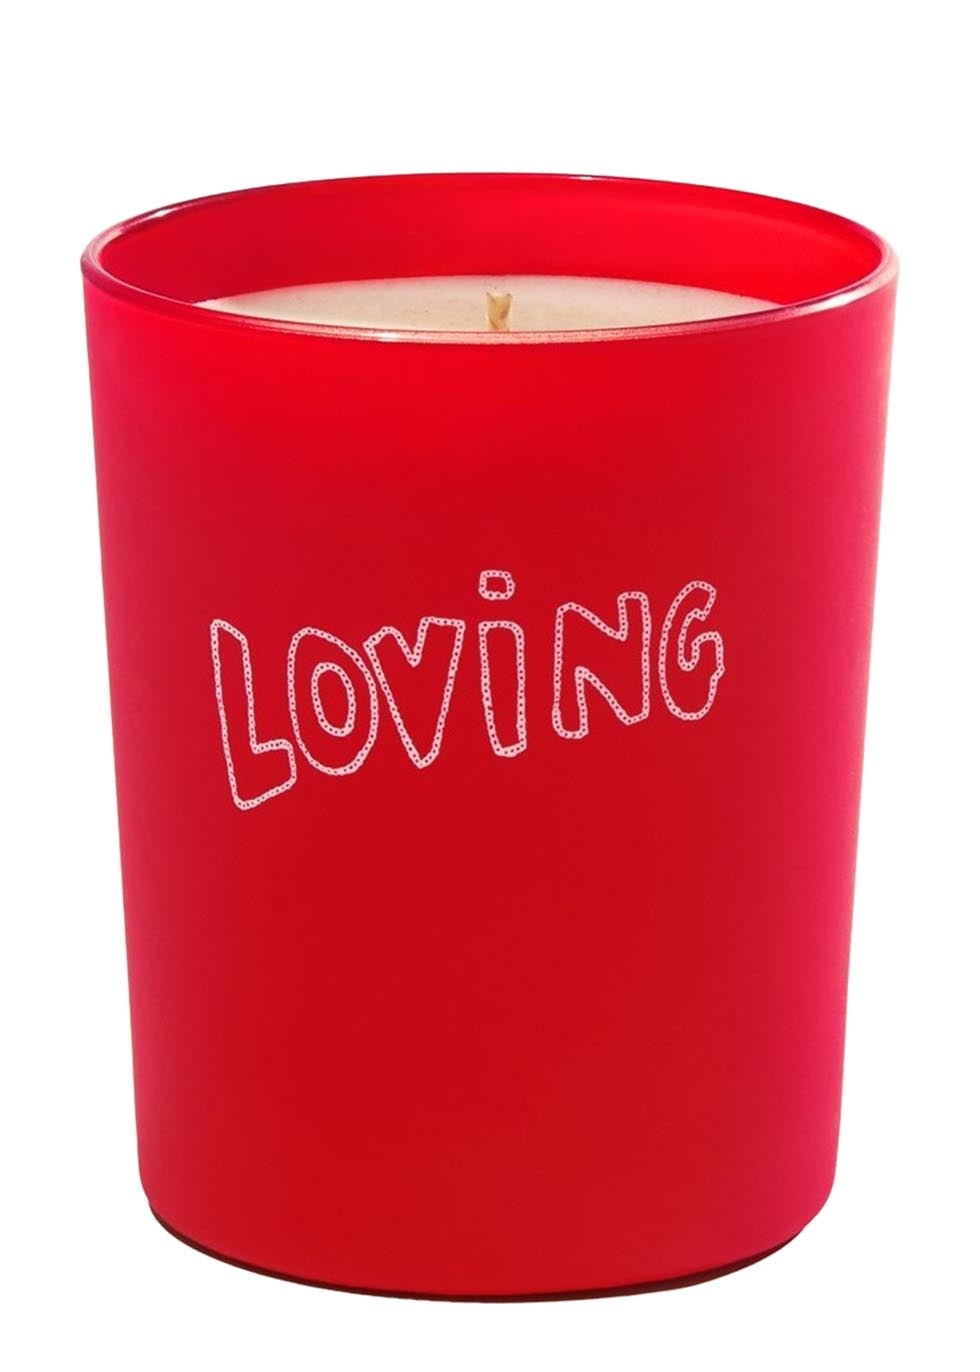 For her - Bella Freud candle, £38 (online at harveynichols.com)